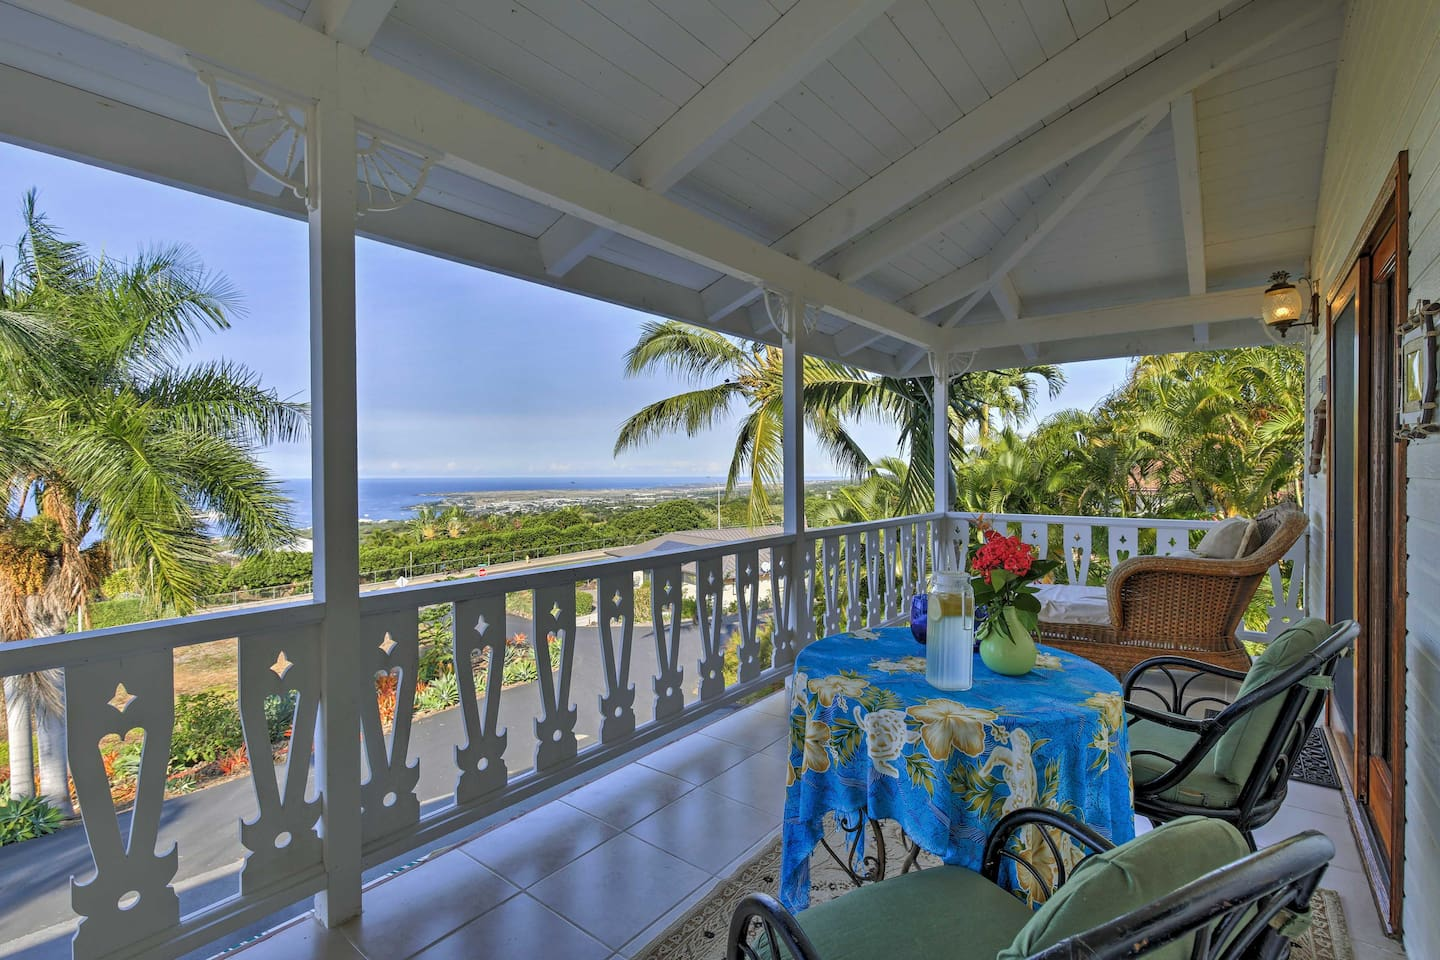 Elevate your island escape at this Kailua-Kona studio with views of the ocean.